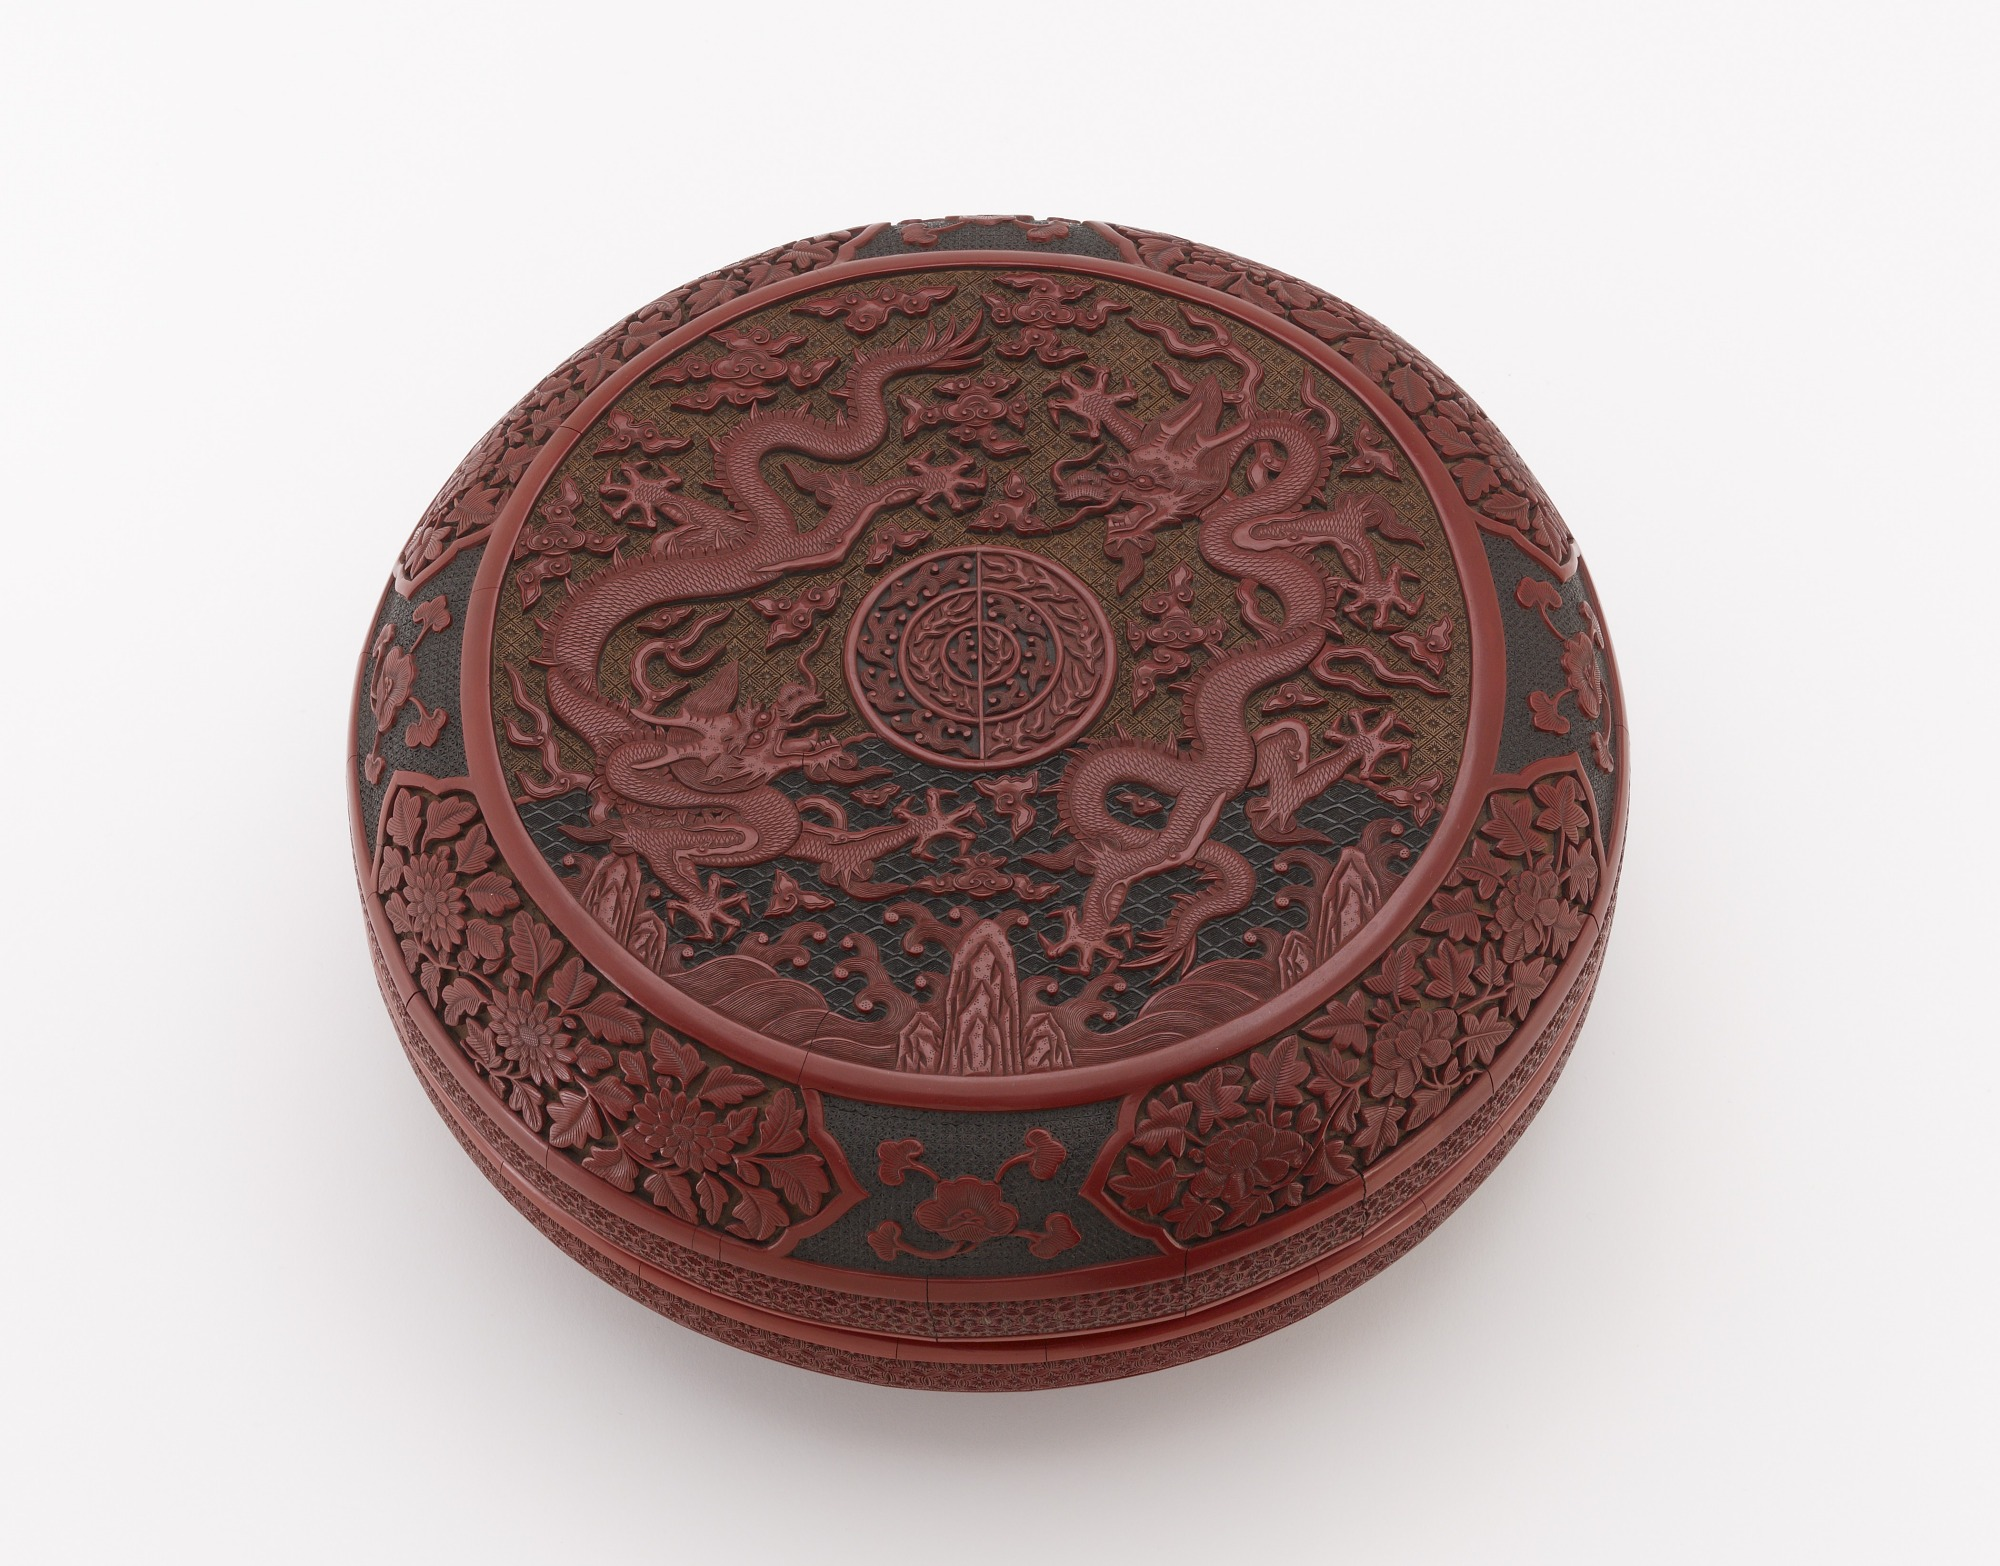 3/4 top view: Round box with dragon and flower